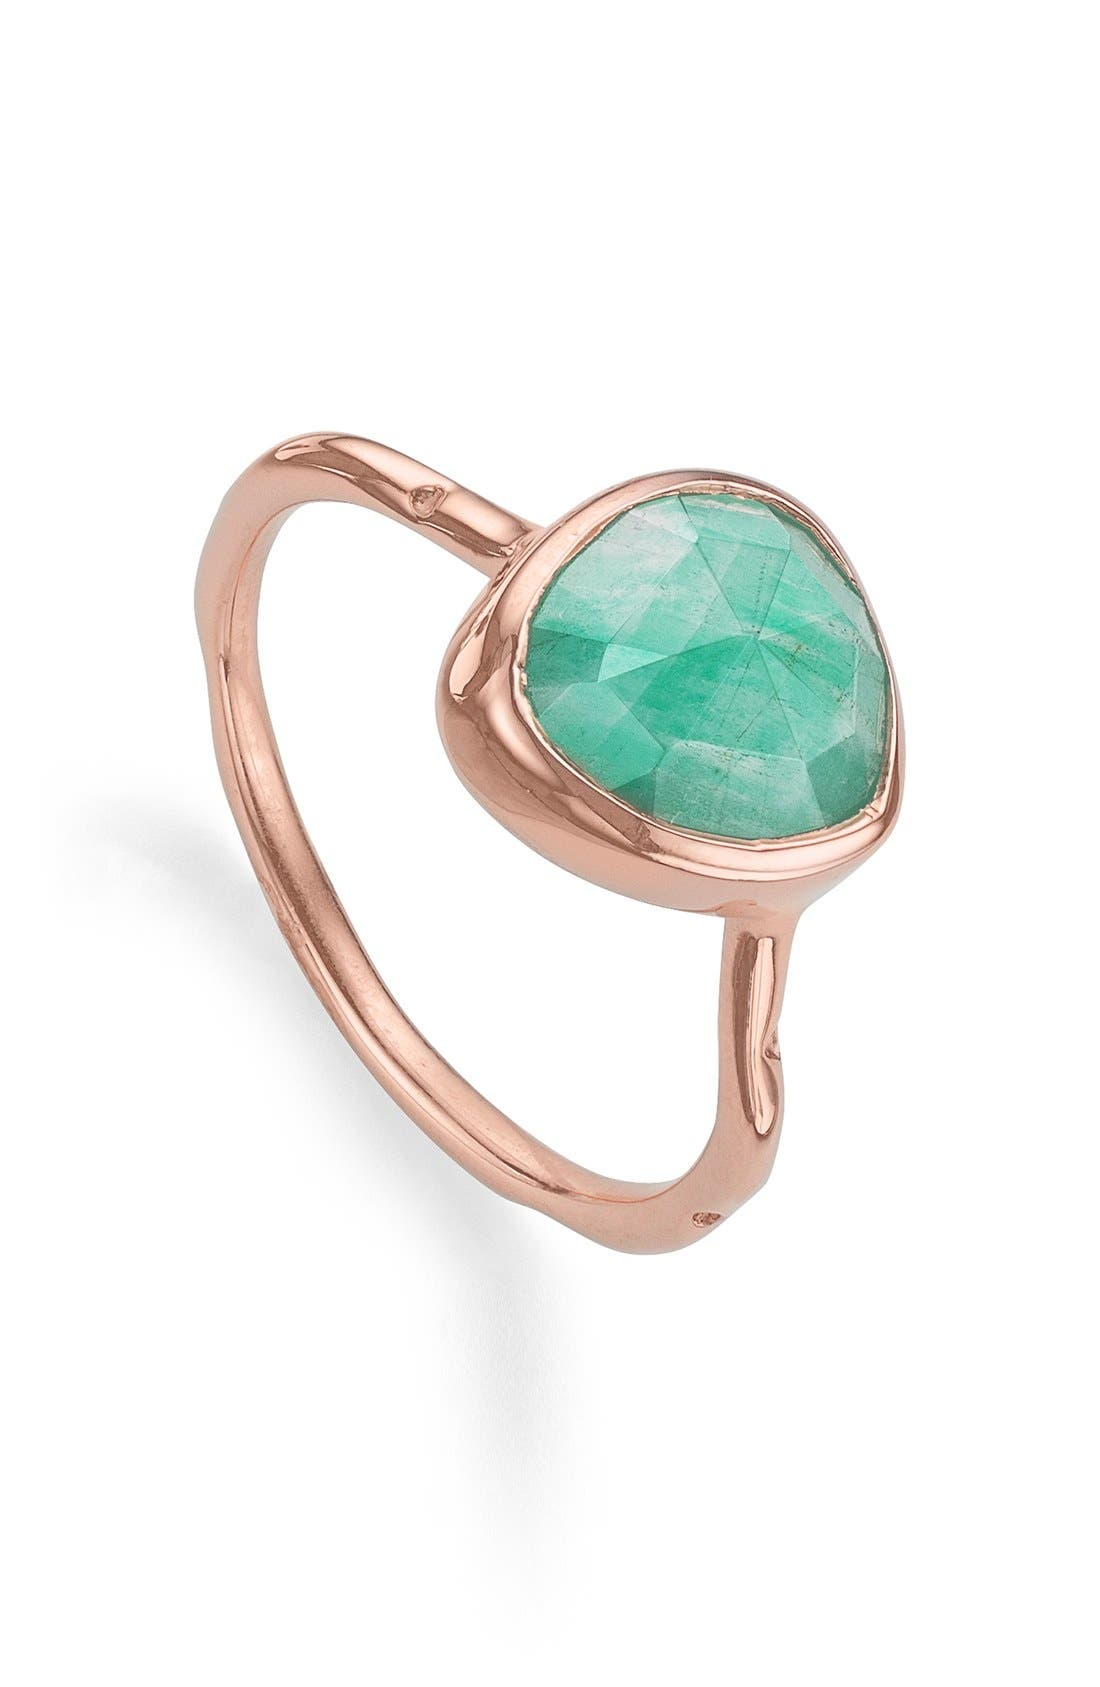 Monica Vinader Siren Semiprecious Stone Stacking Ring